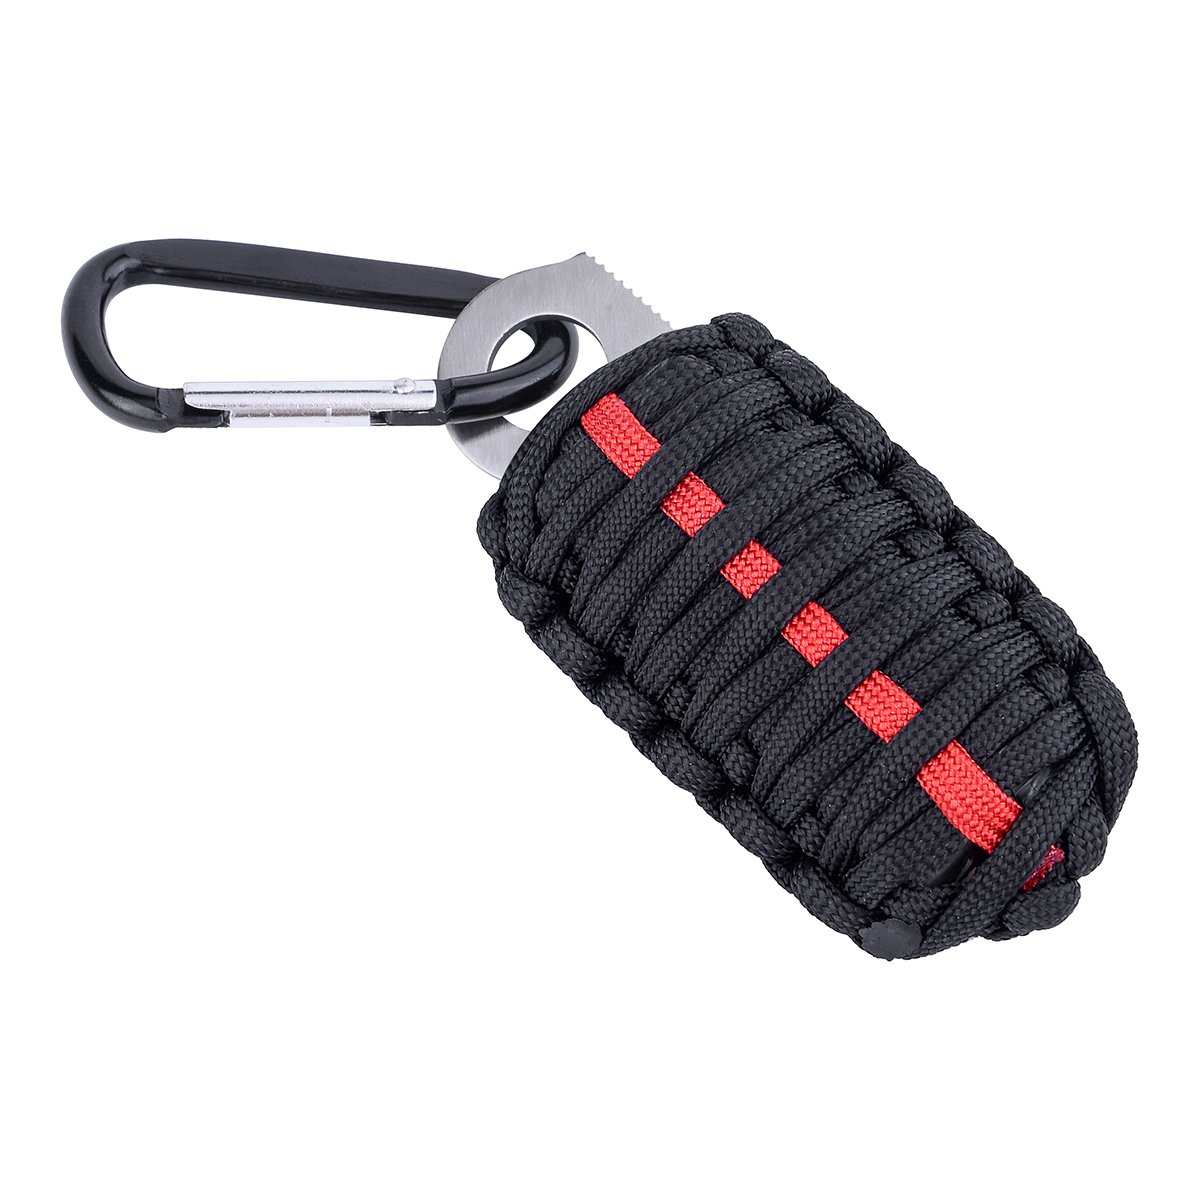 LiangGui 12 Pcs Paracord Survival Grenade Emergency Keychain Survival Kit for EDC Every Day Carry Key Chain Survival Gear Black